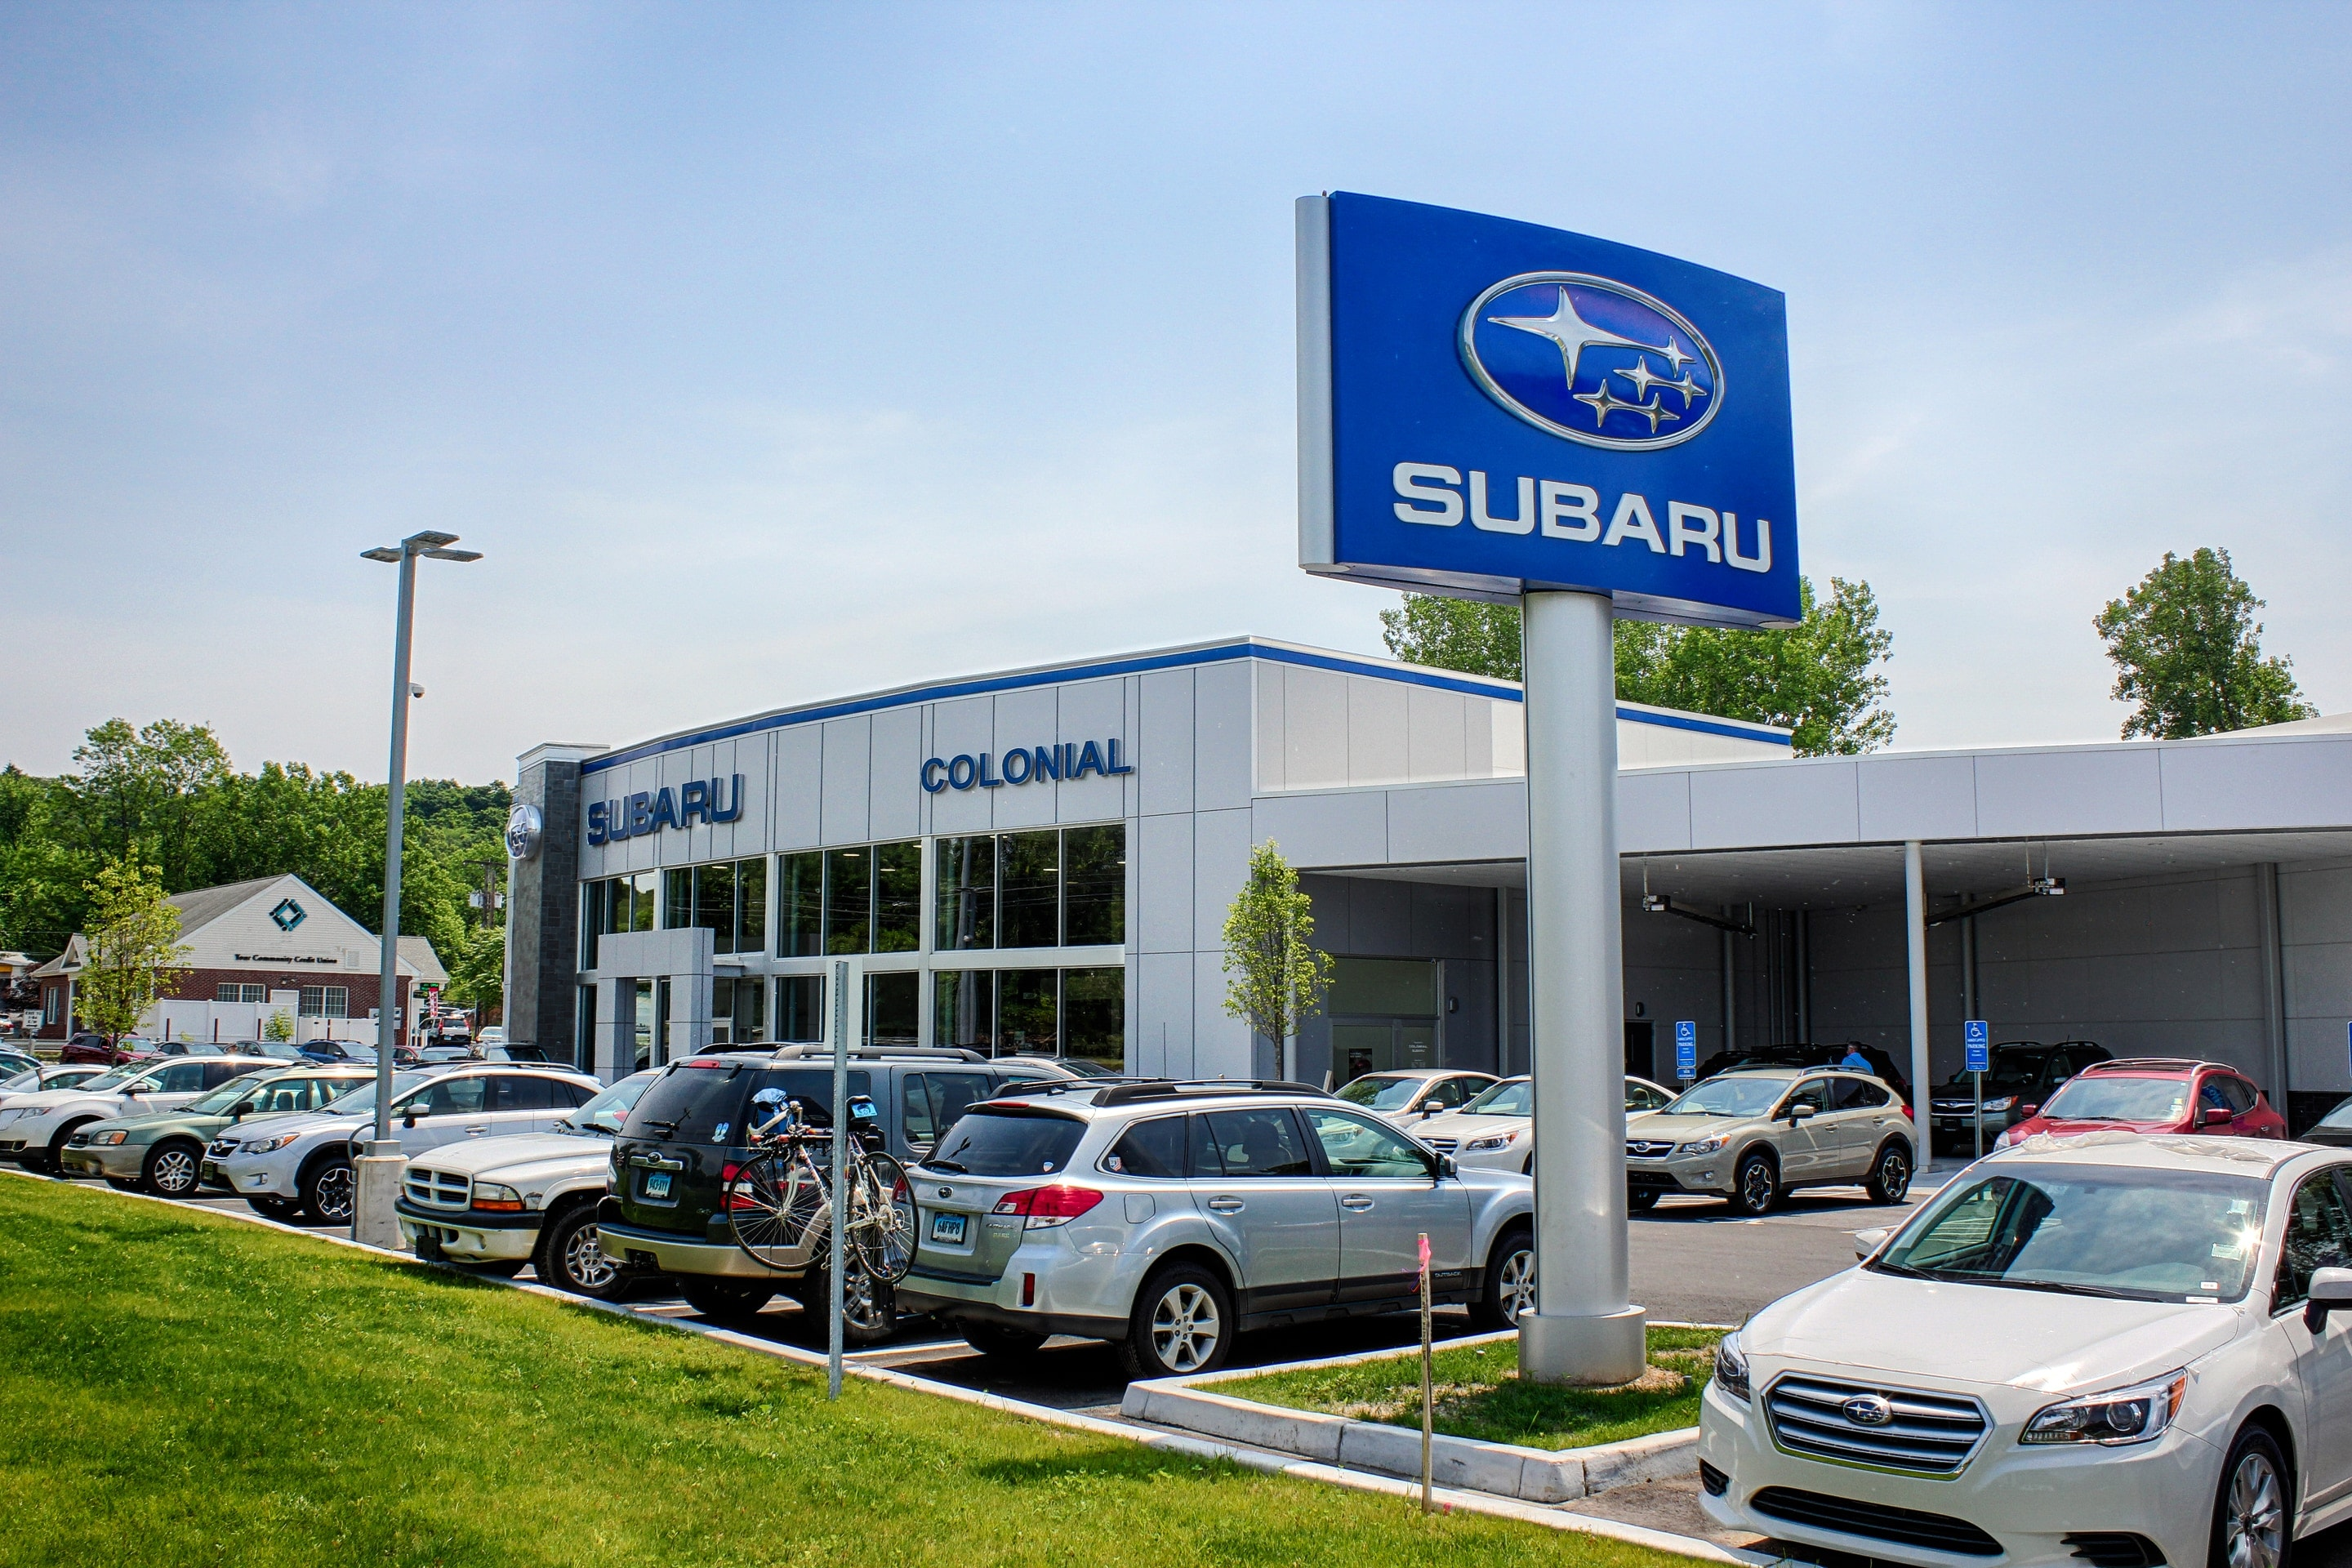 Subaru Incentives Rebates Specials in Danbury Subaru Finance and